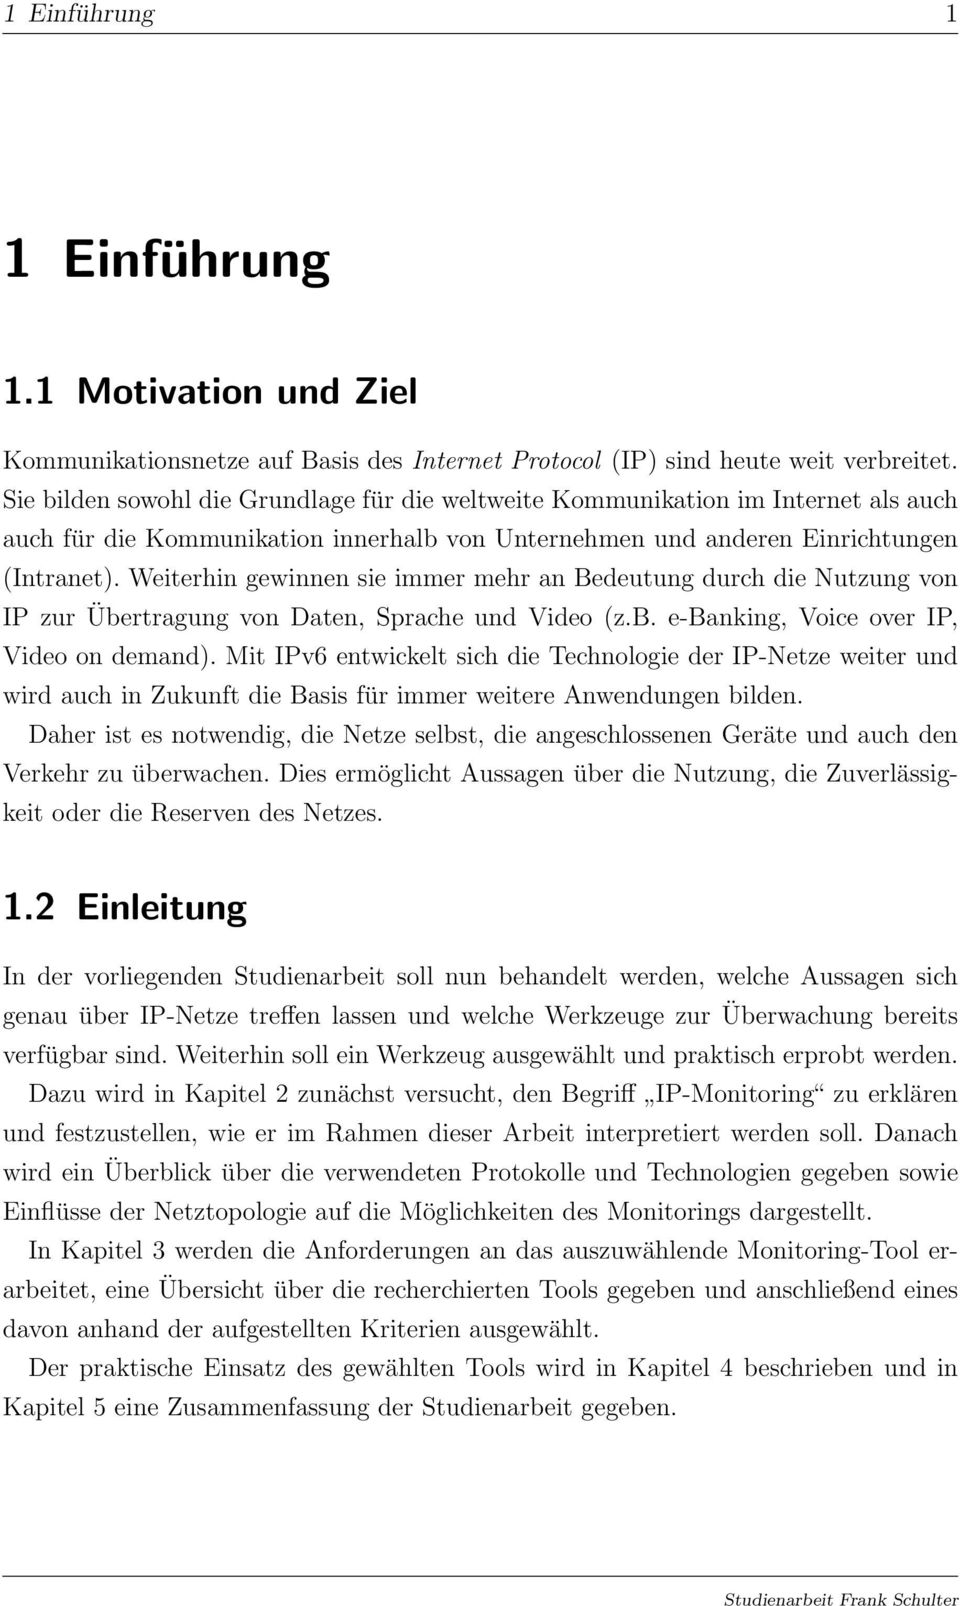 Weiterhin gewinnen sie immer mehr an Bedeutung durch die Nutzung von IP zur Übertragung von Daten, Sprache und Video (z.b. e-banking, Voice over IP, Video on demand).